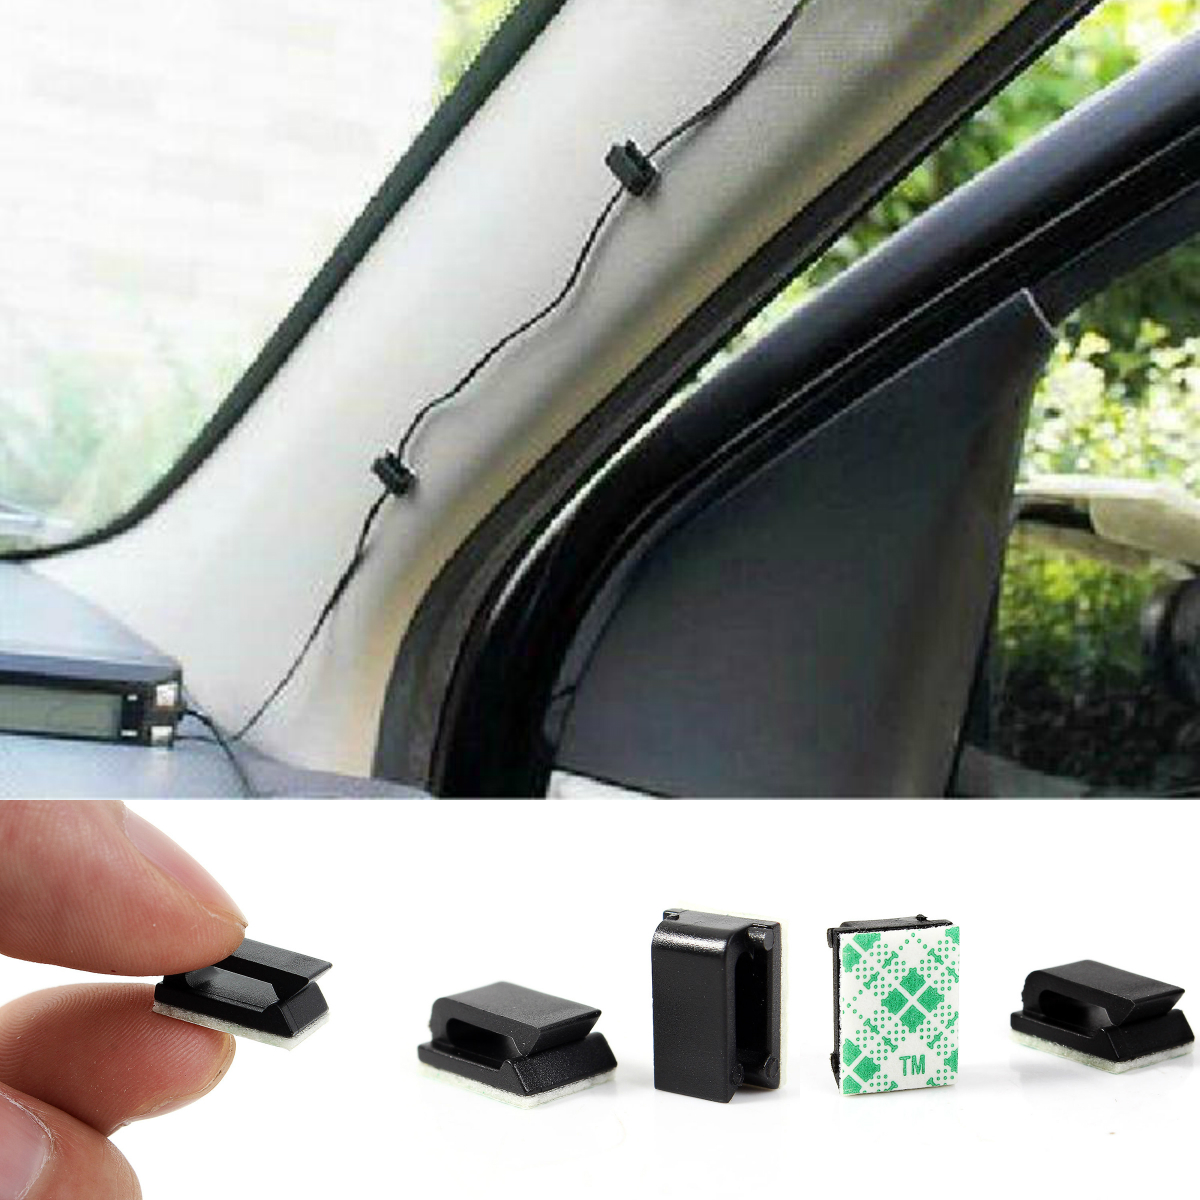 10pcs House Office Car Single Hole Cable Holder Wire Cord Cable Flat Holder Tie Clips Fixer Organizer Drop Adhesive Clamp